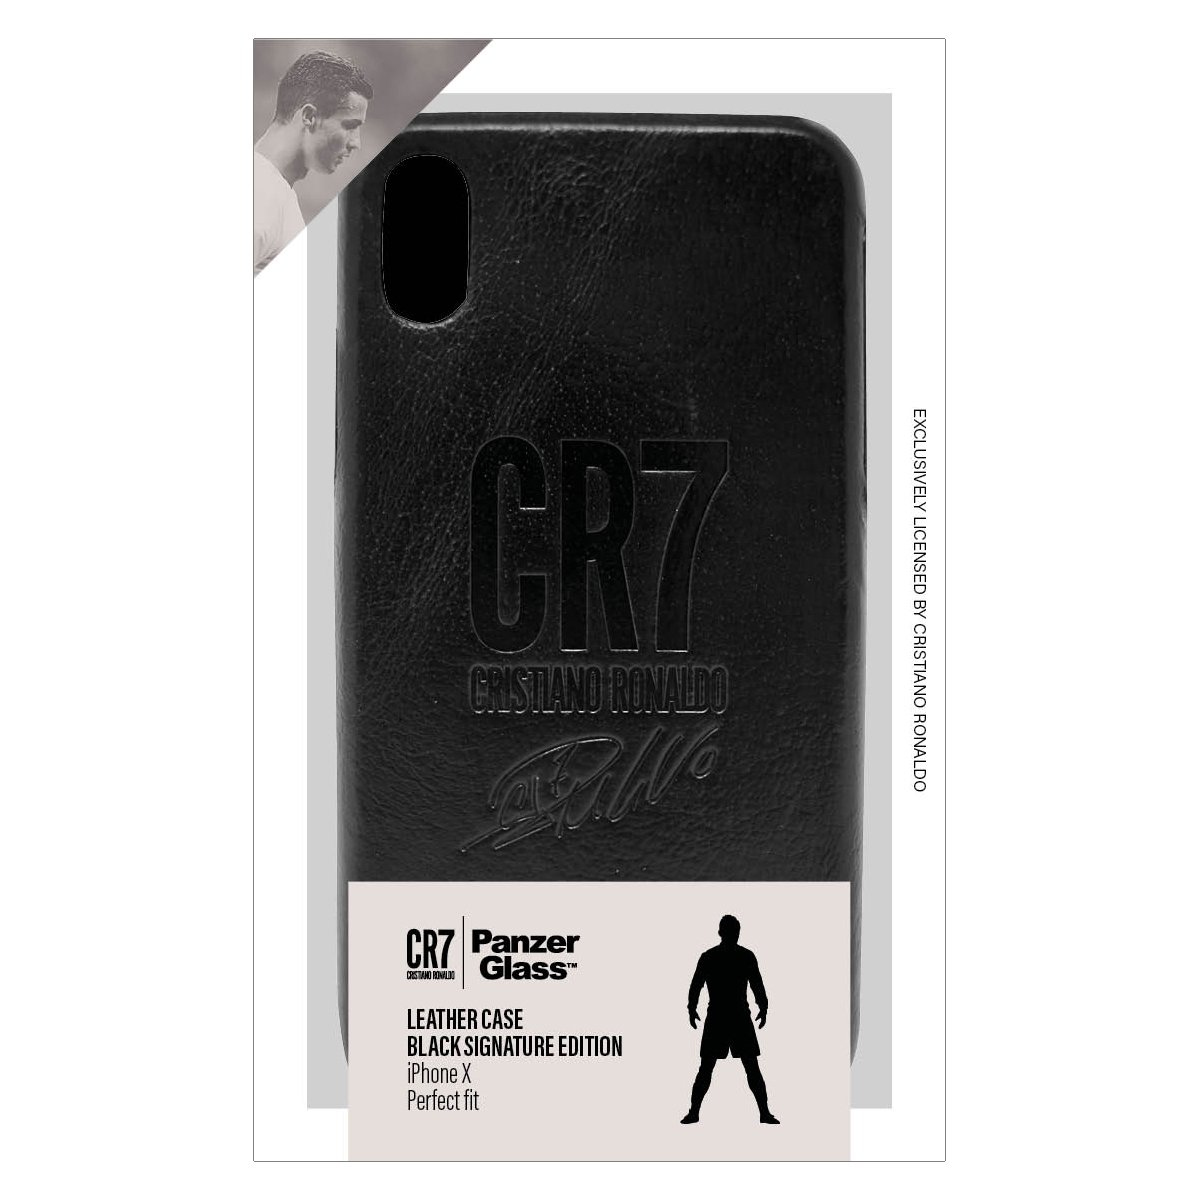 "PanzerGlass 0147 mobile phone case 14.7 cm (5.8"") Cover Black"